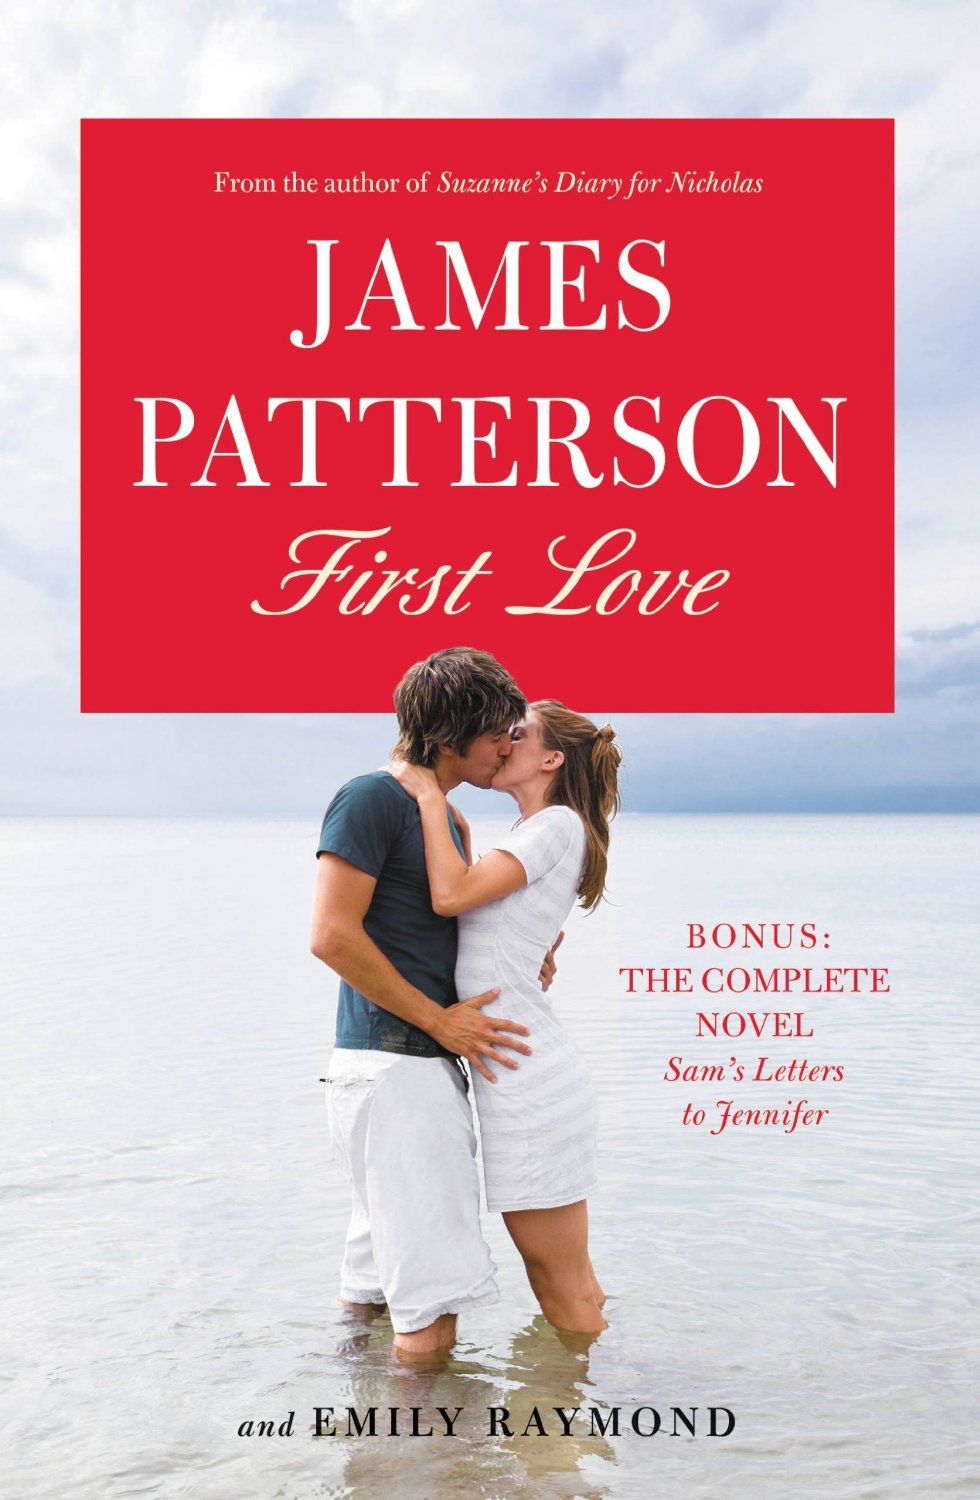 First Love Rewriting And Major Editing: James Patterson